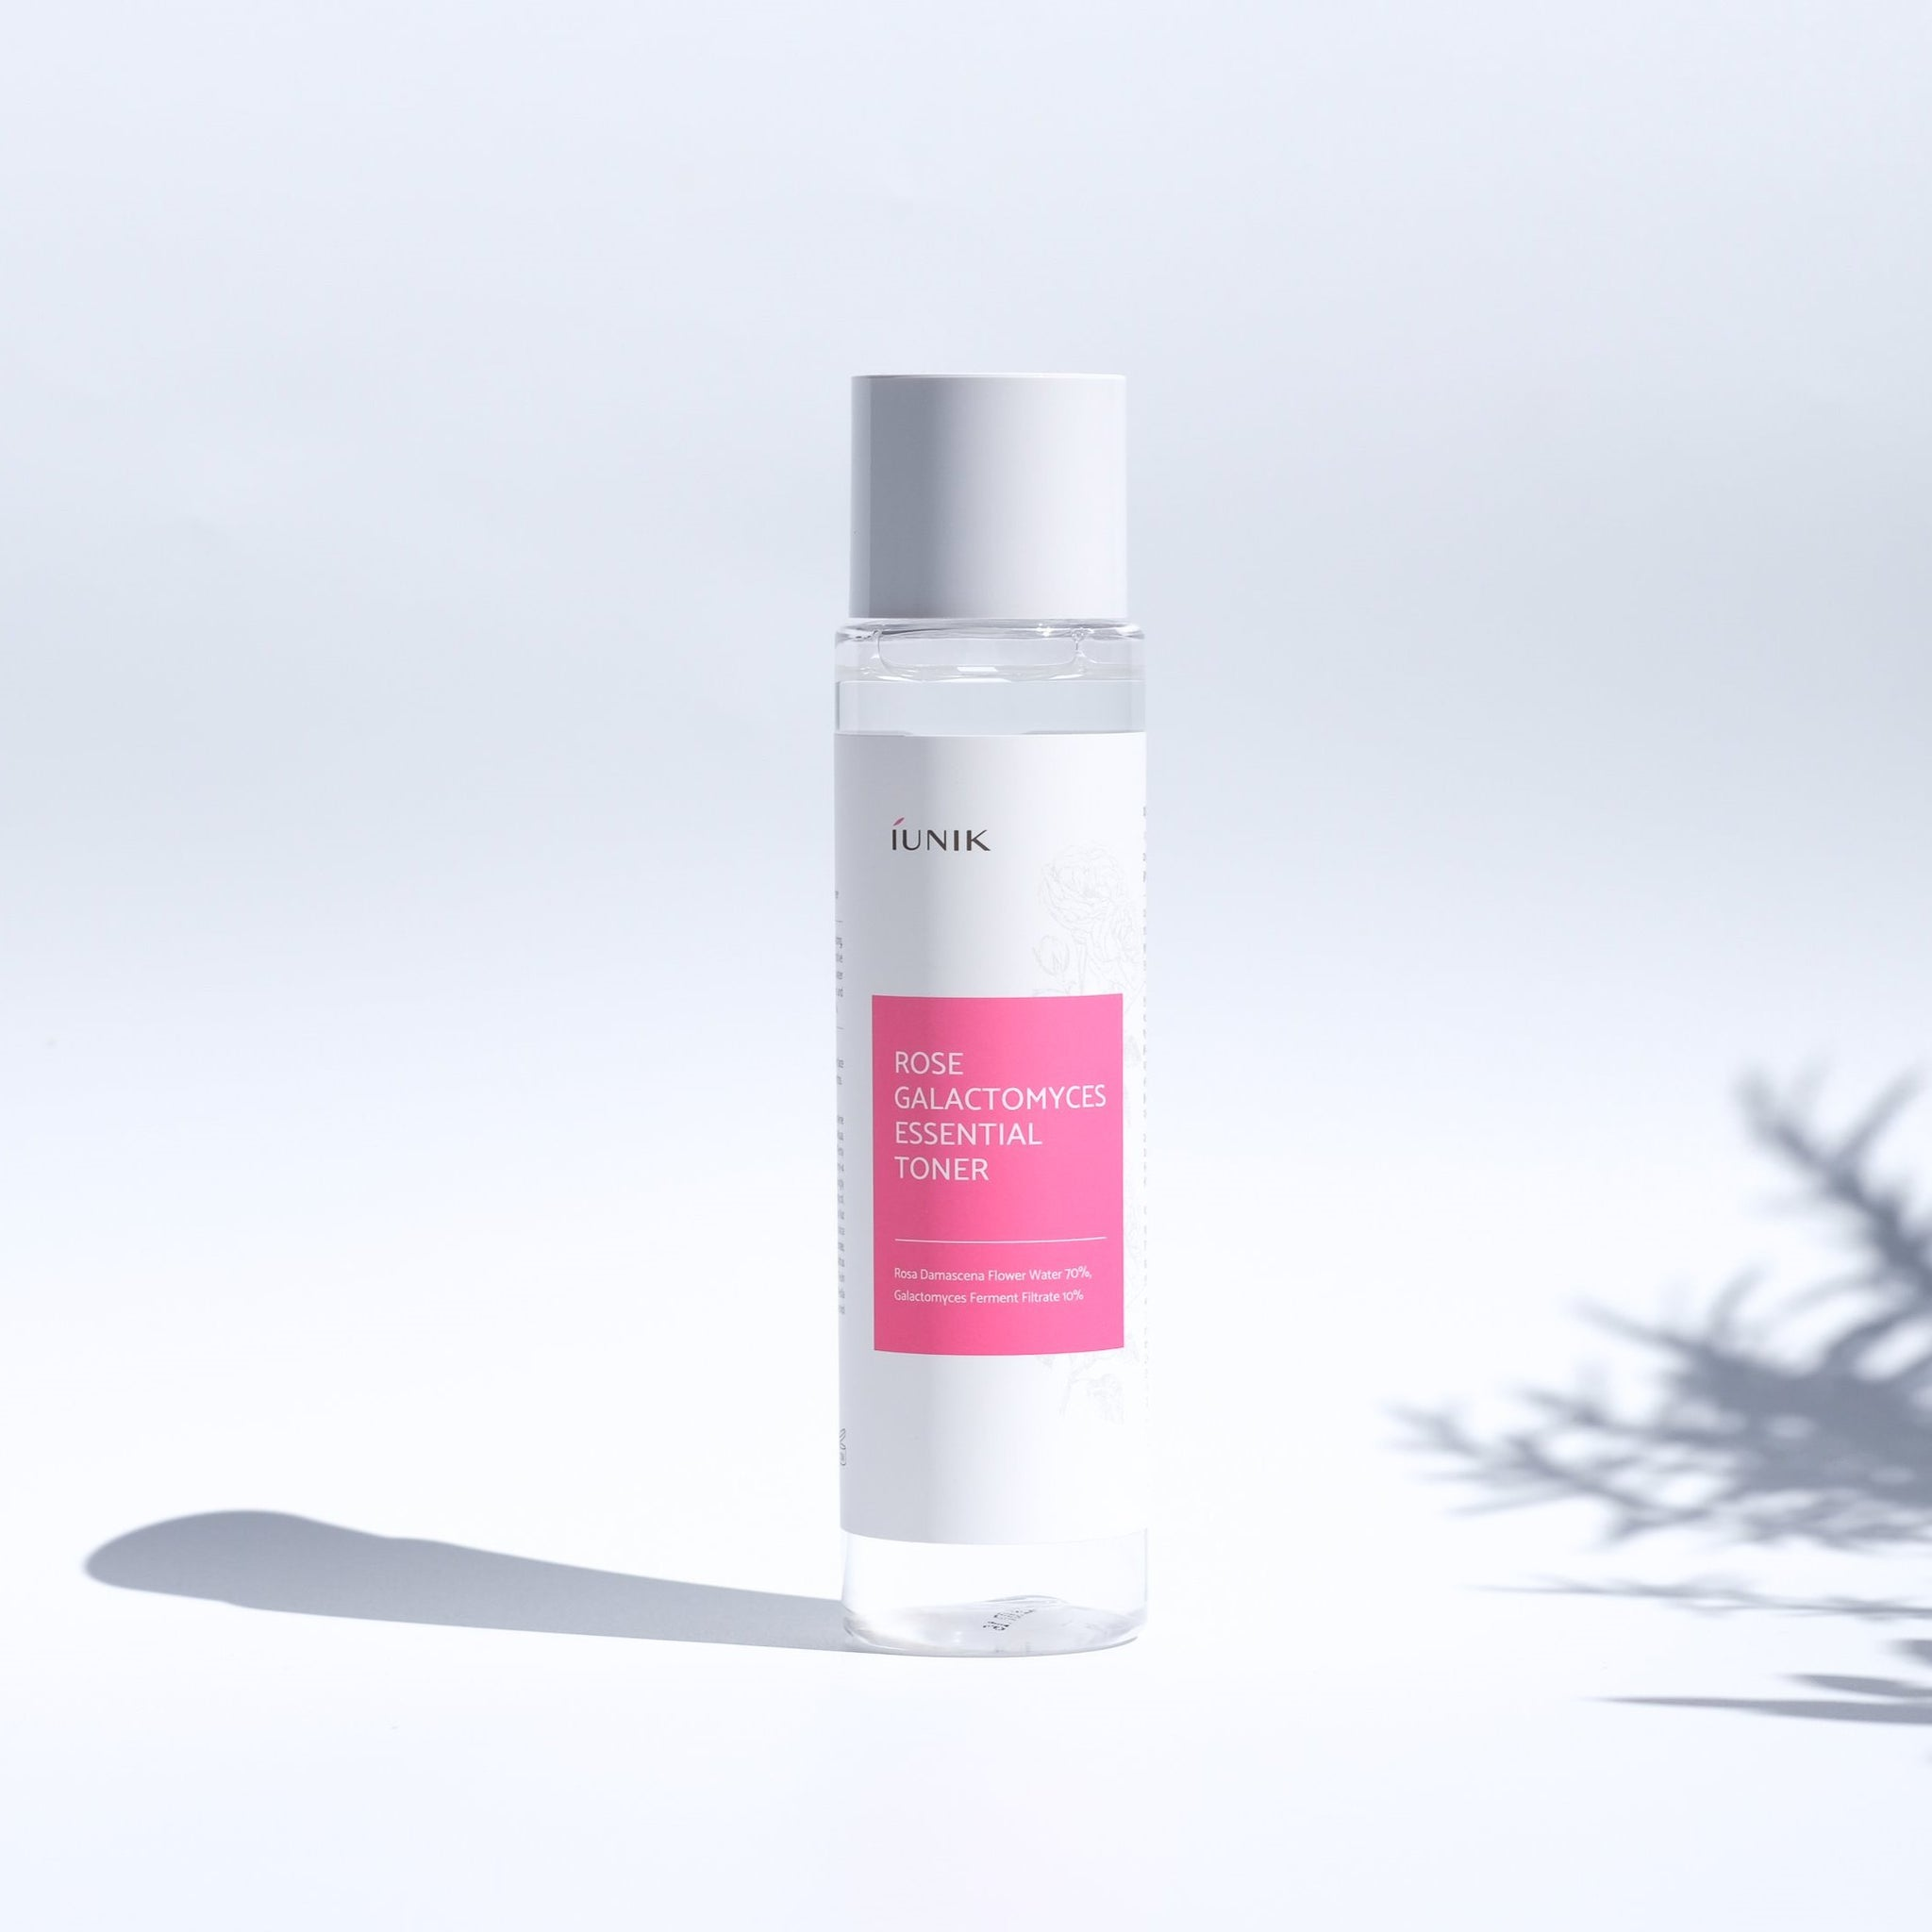 iunik-rose-galactomyces-essential-toner